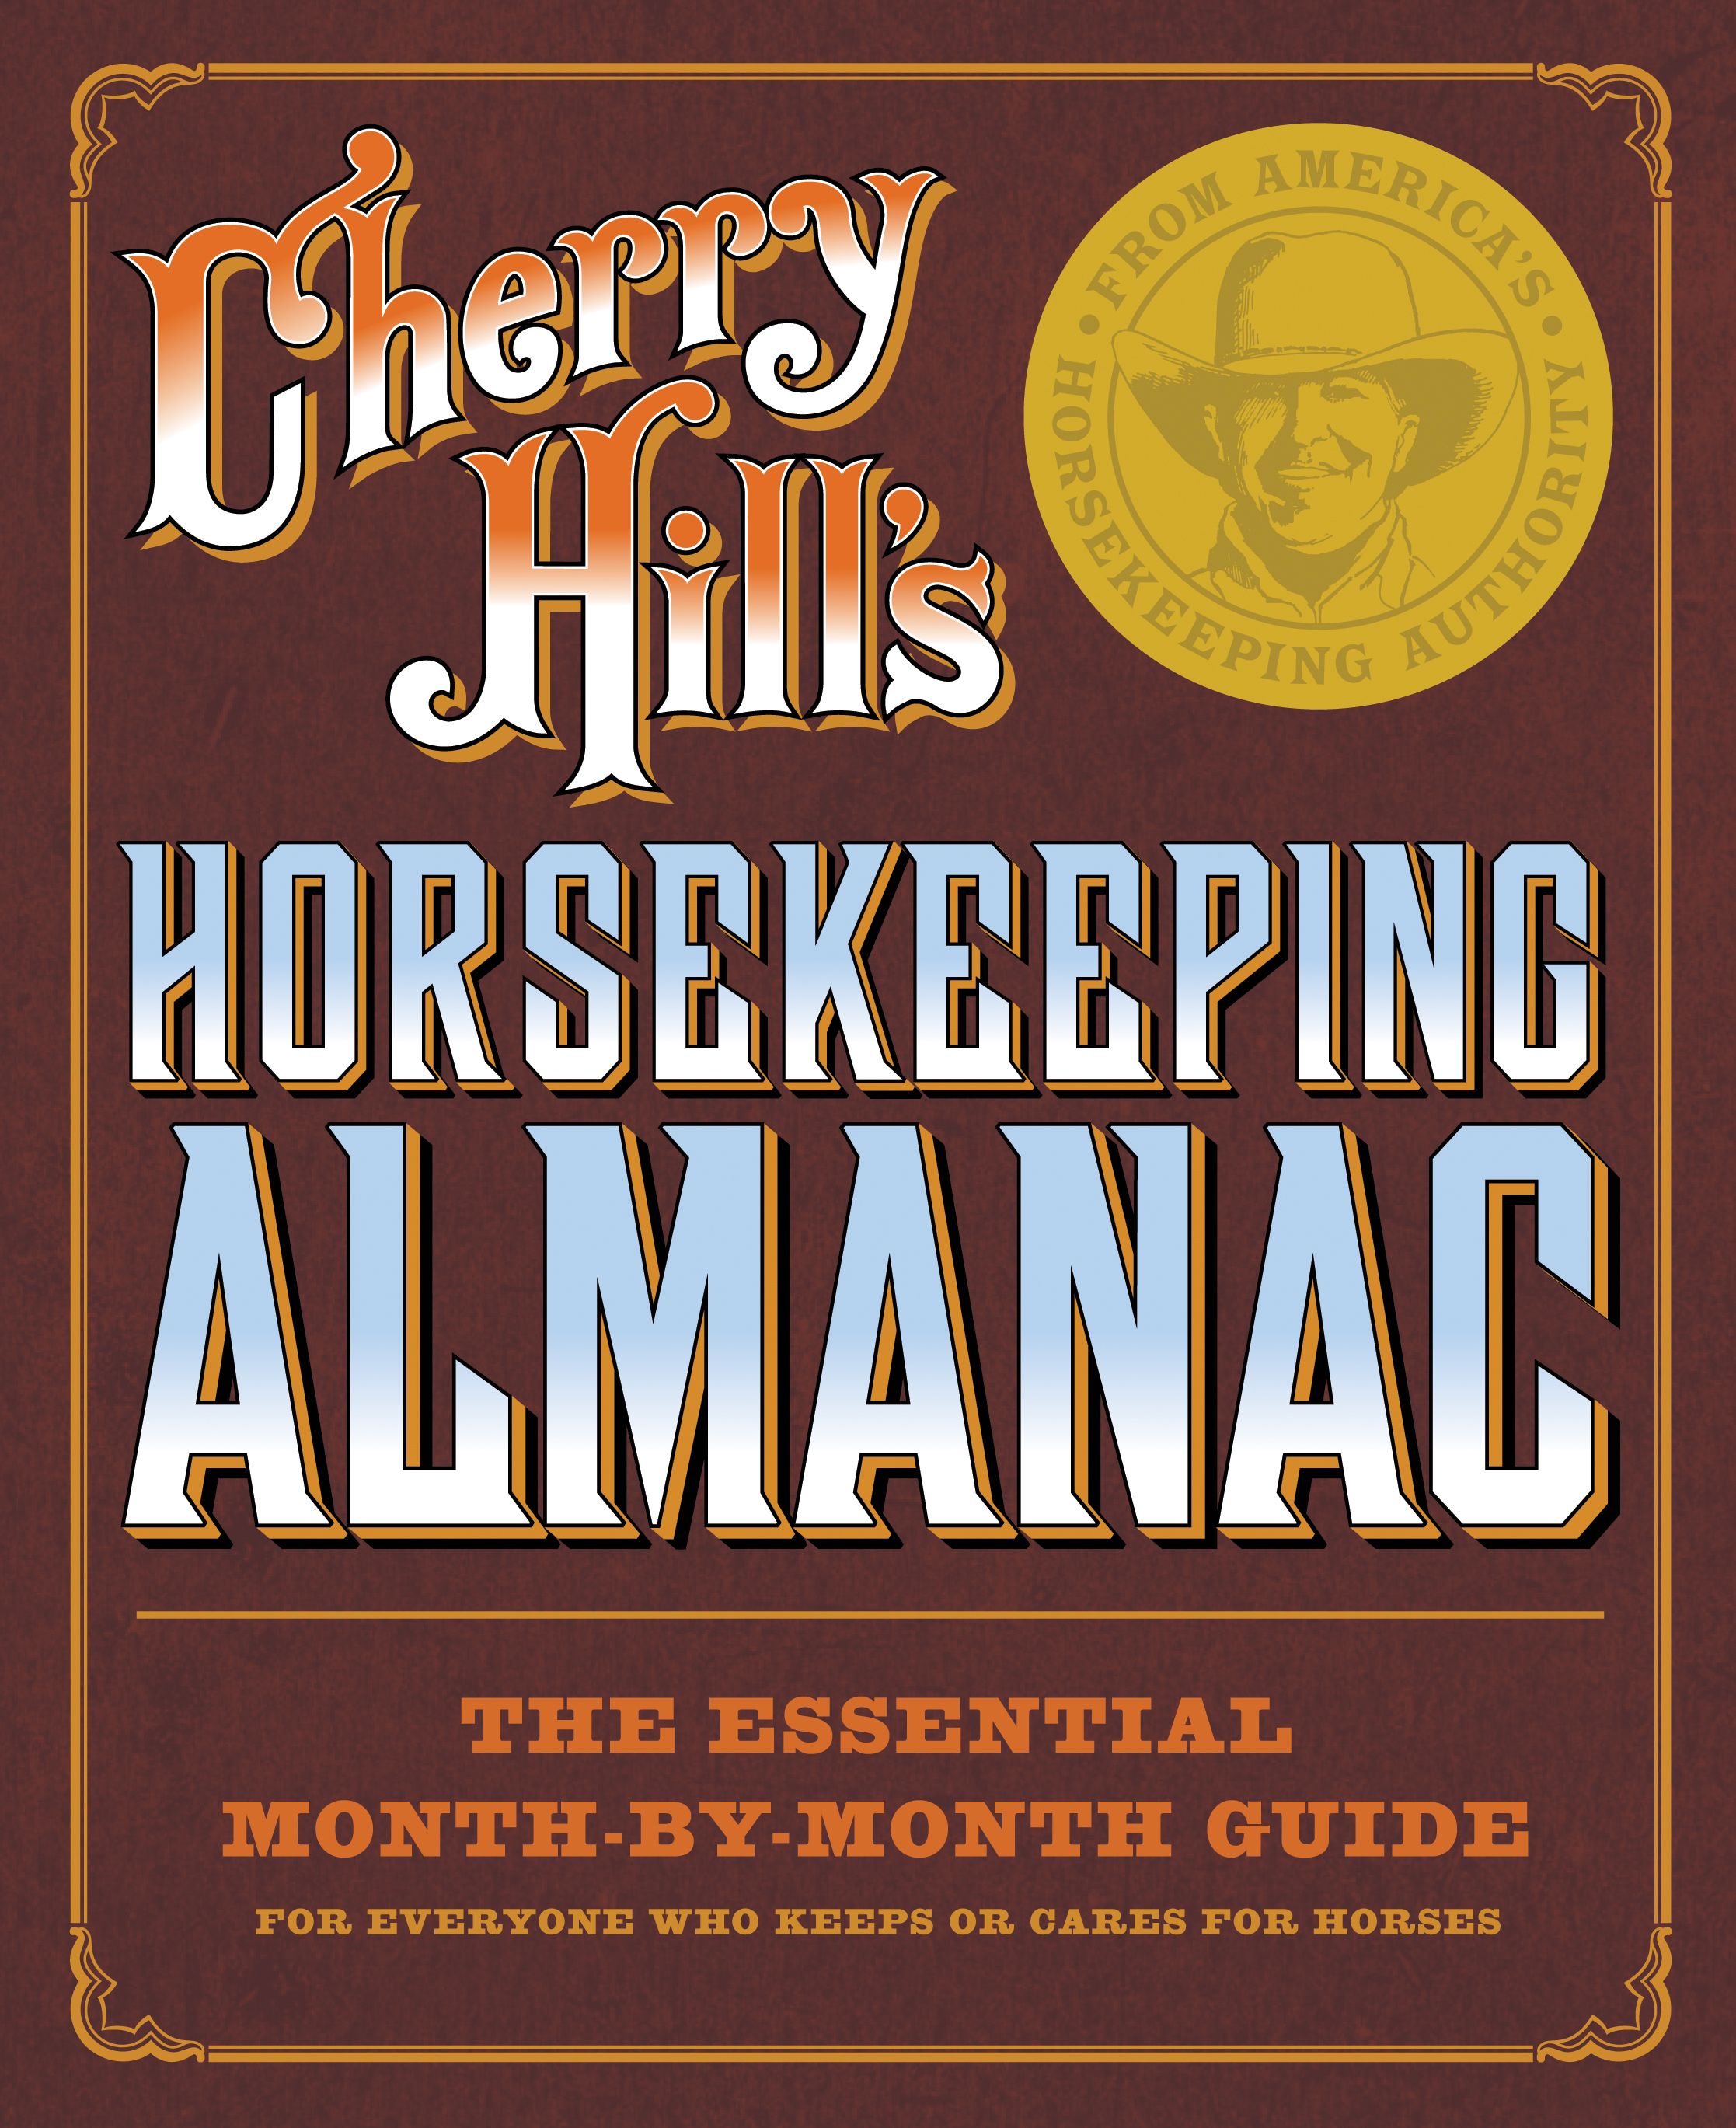 Cherry Hill's Horsekeeping Almanac The Essential Month-by-Month Guide for Everyone Who Keeps or Cares for Horses - Cherry Hill